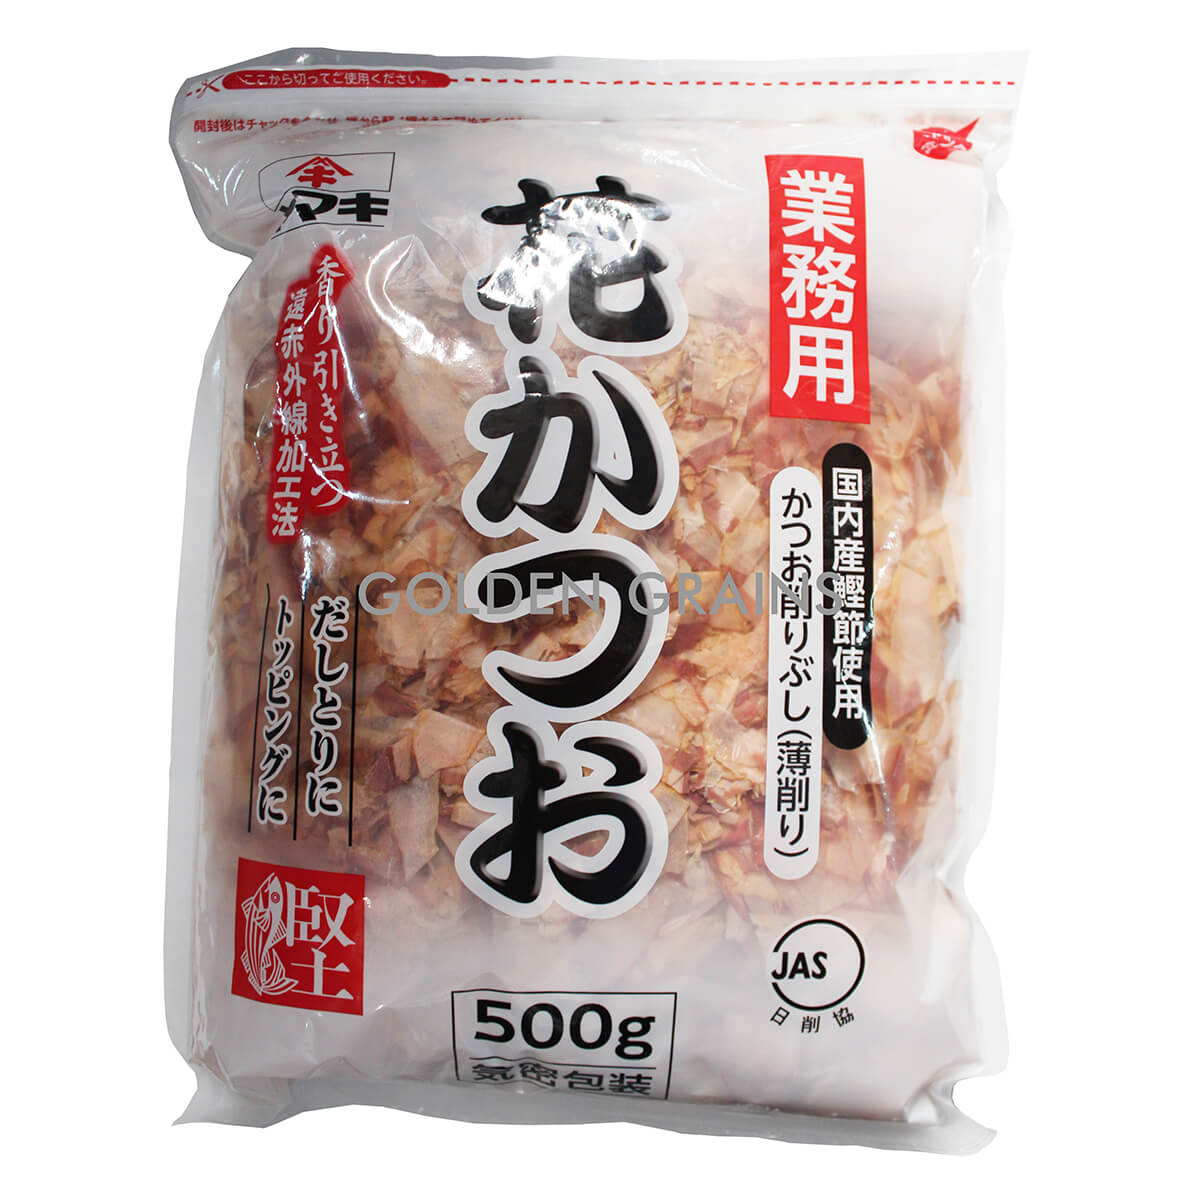 Golden Grains Hana - Bonito Flakes - 500G - Japan - Front.jpg